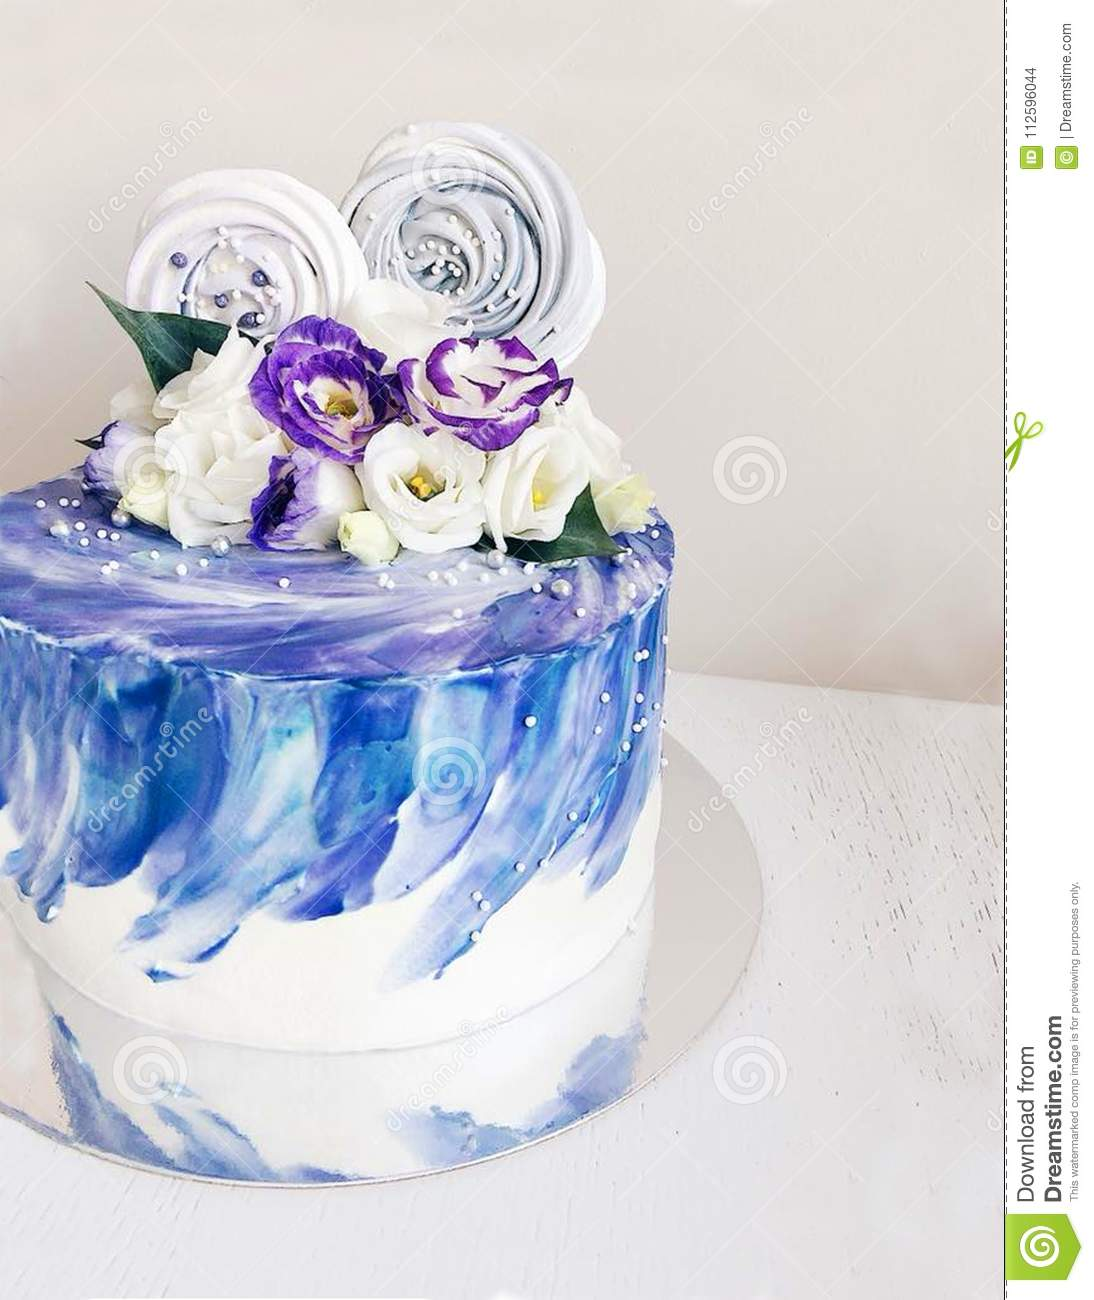 White Cake With Cream Of Sea Color Stock Photo Image Of Gift